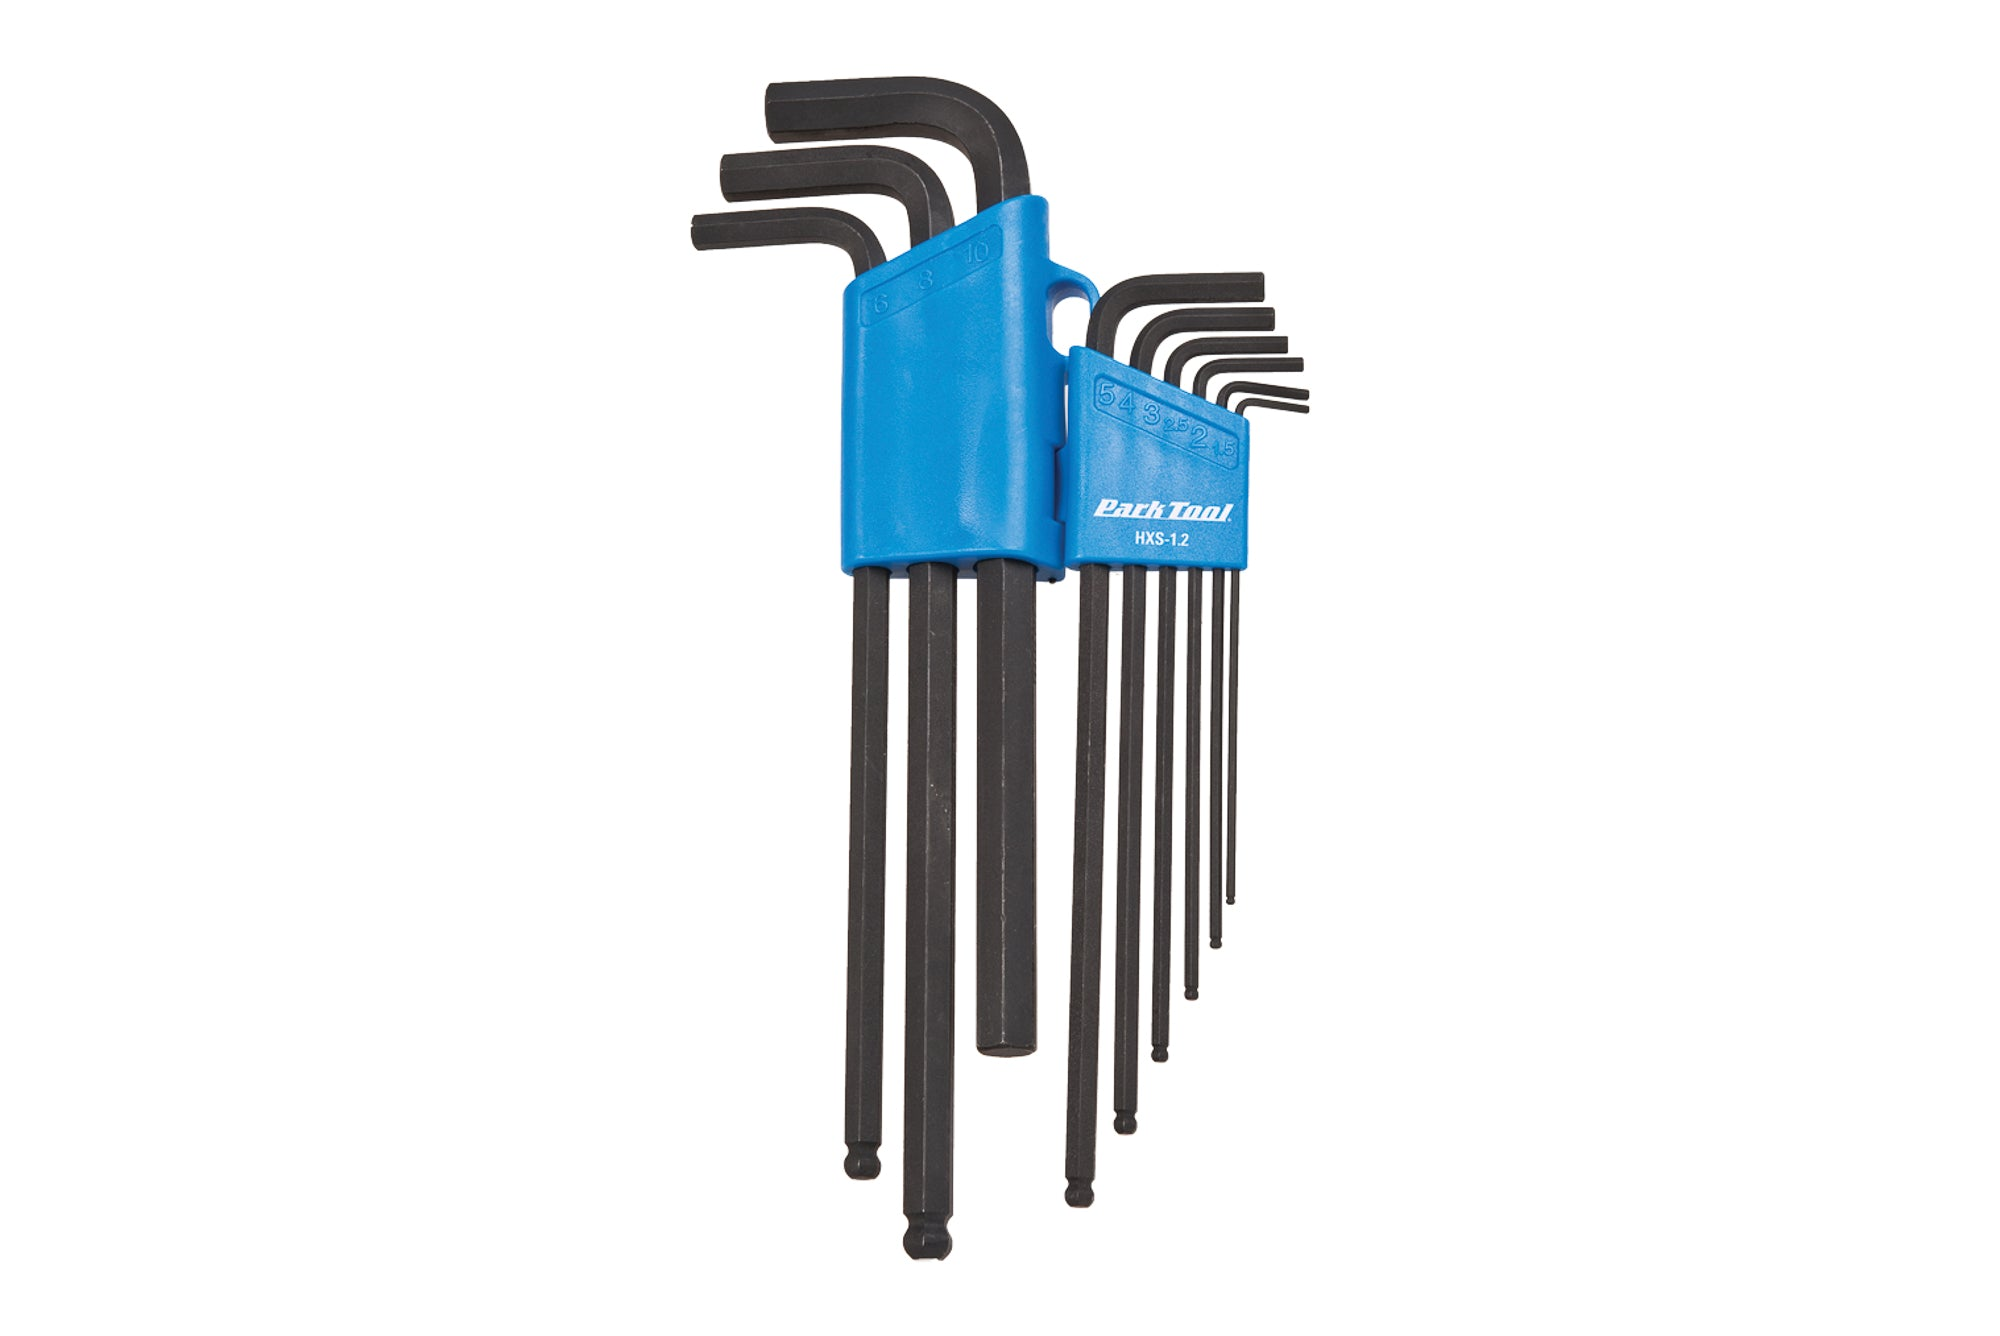 Park Tool Professional Hex Wrench Set - HXS-1.2